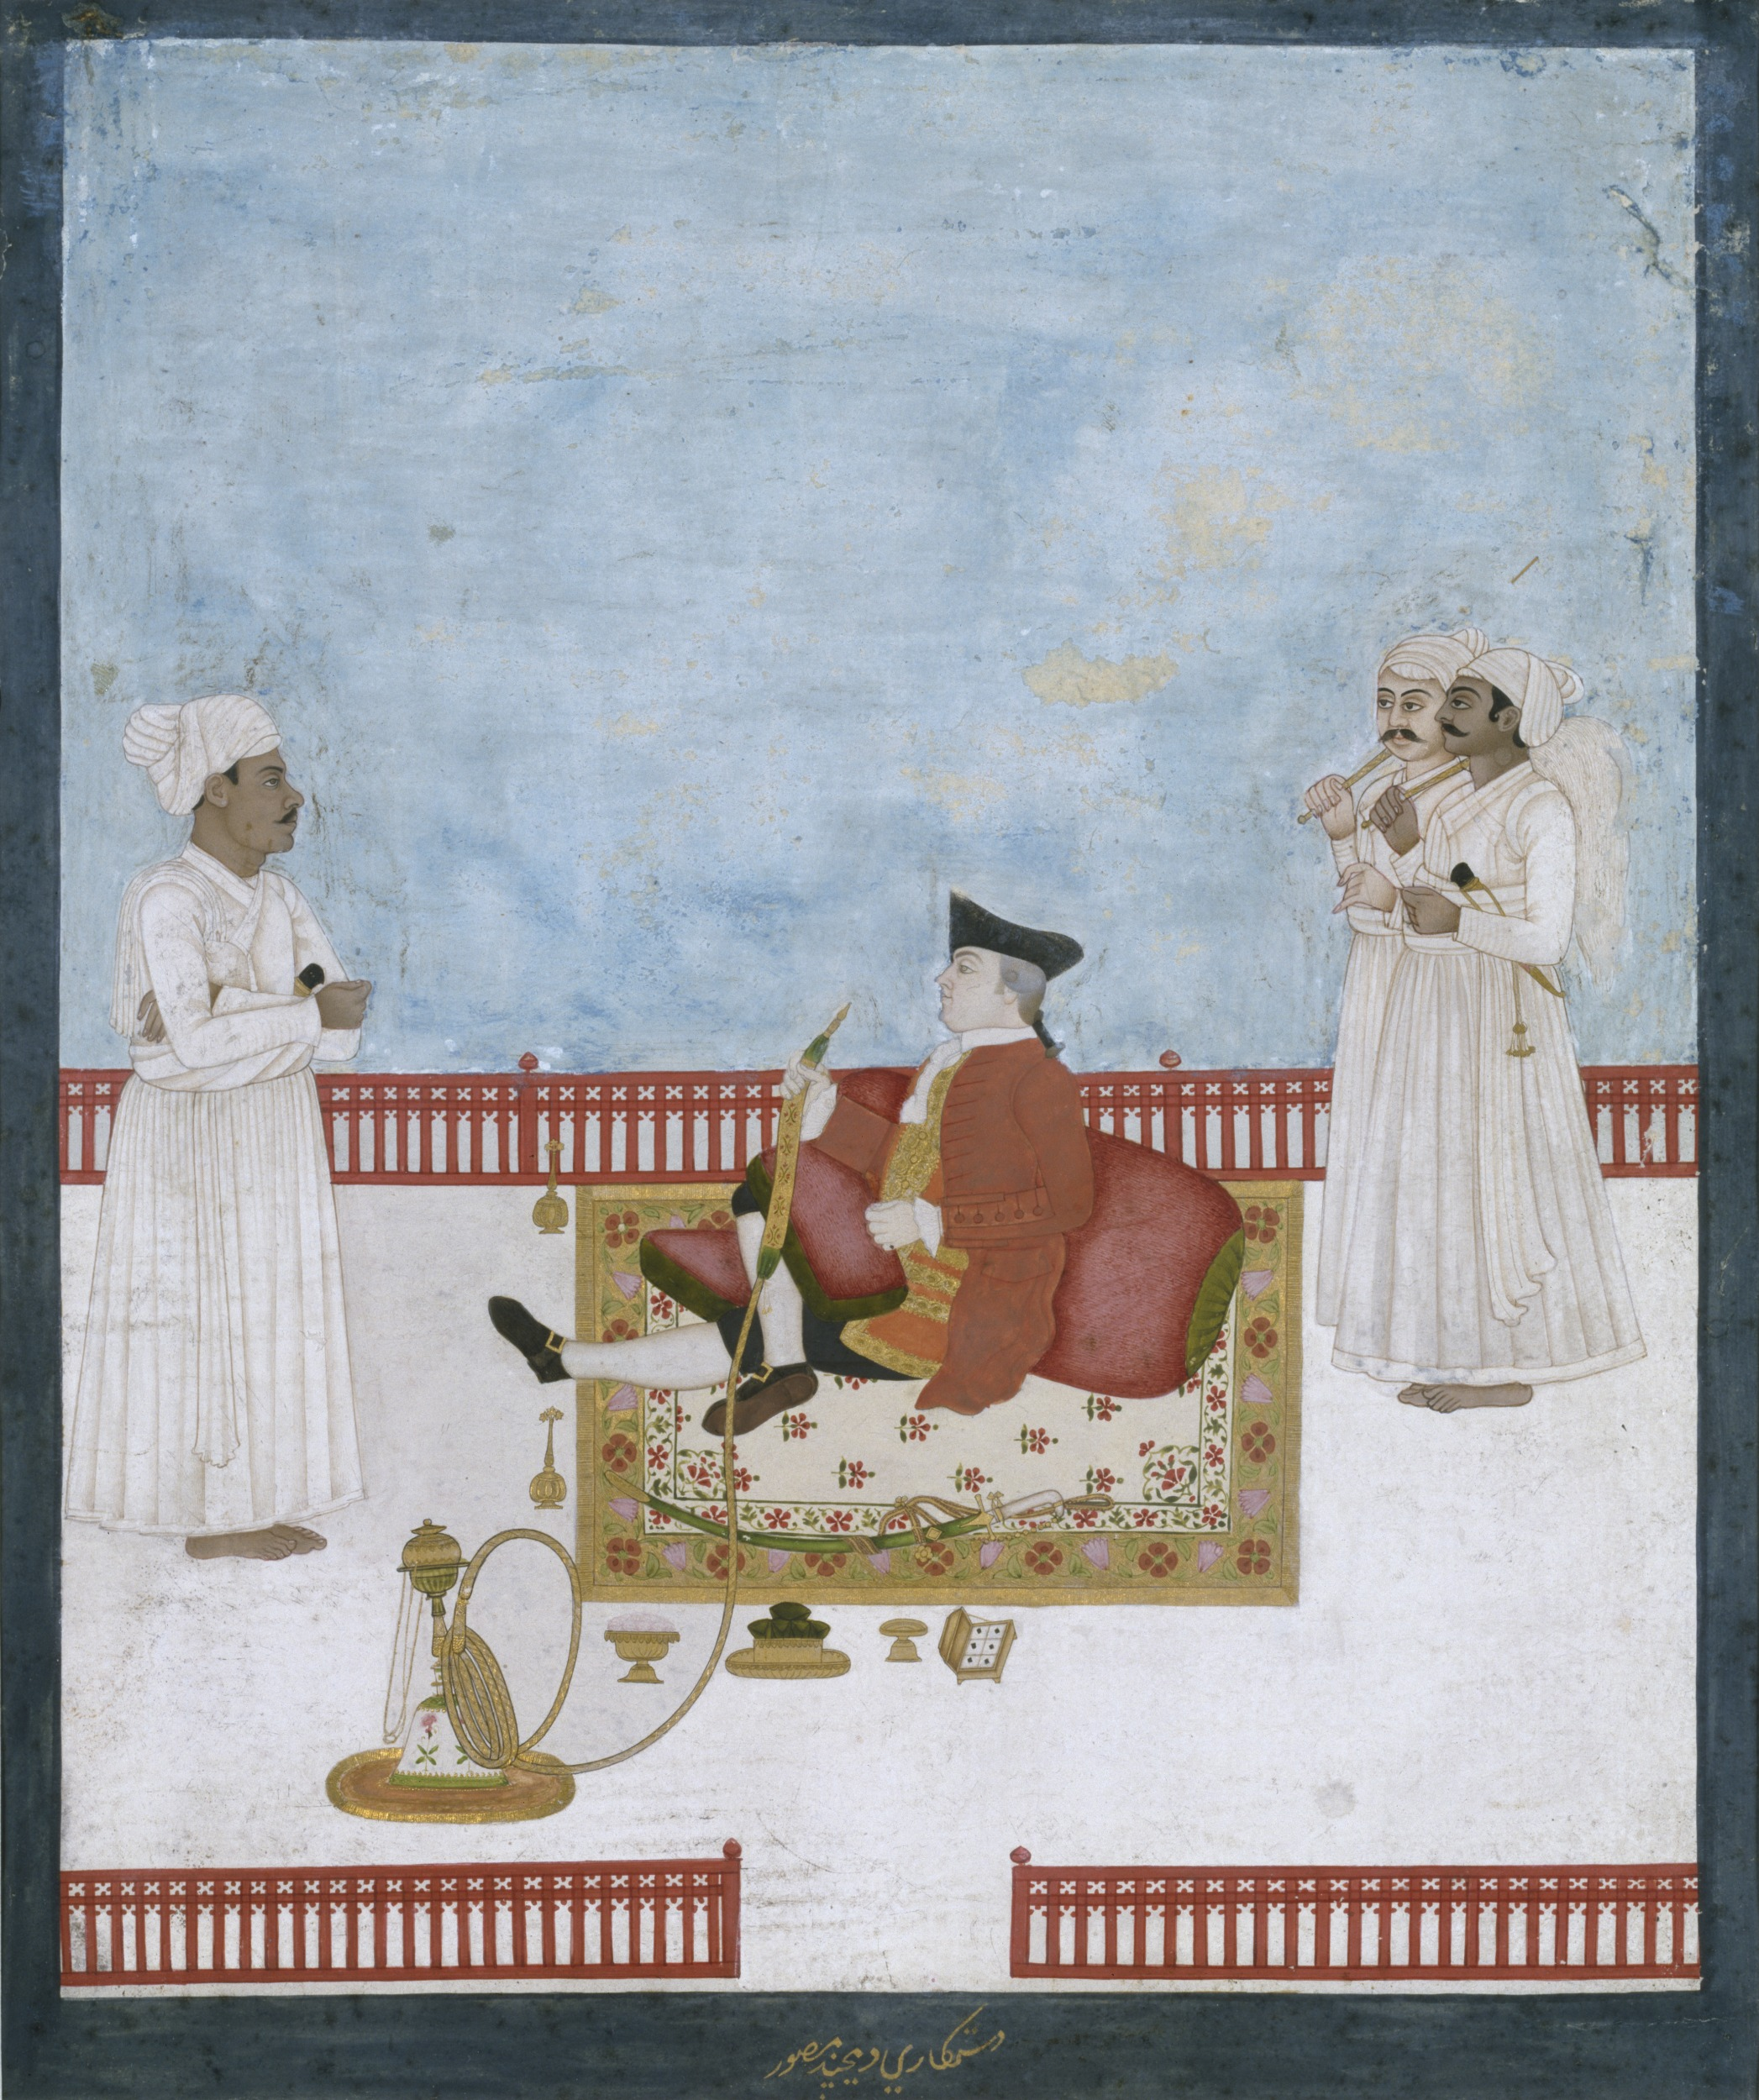 Portrait of an East India Company Official by Dip Chand, painted c. 1760-4